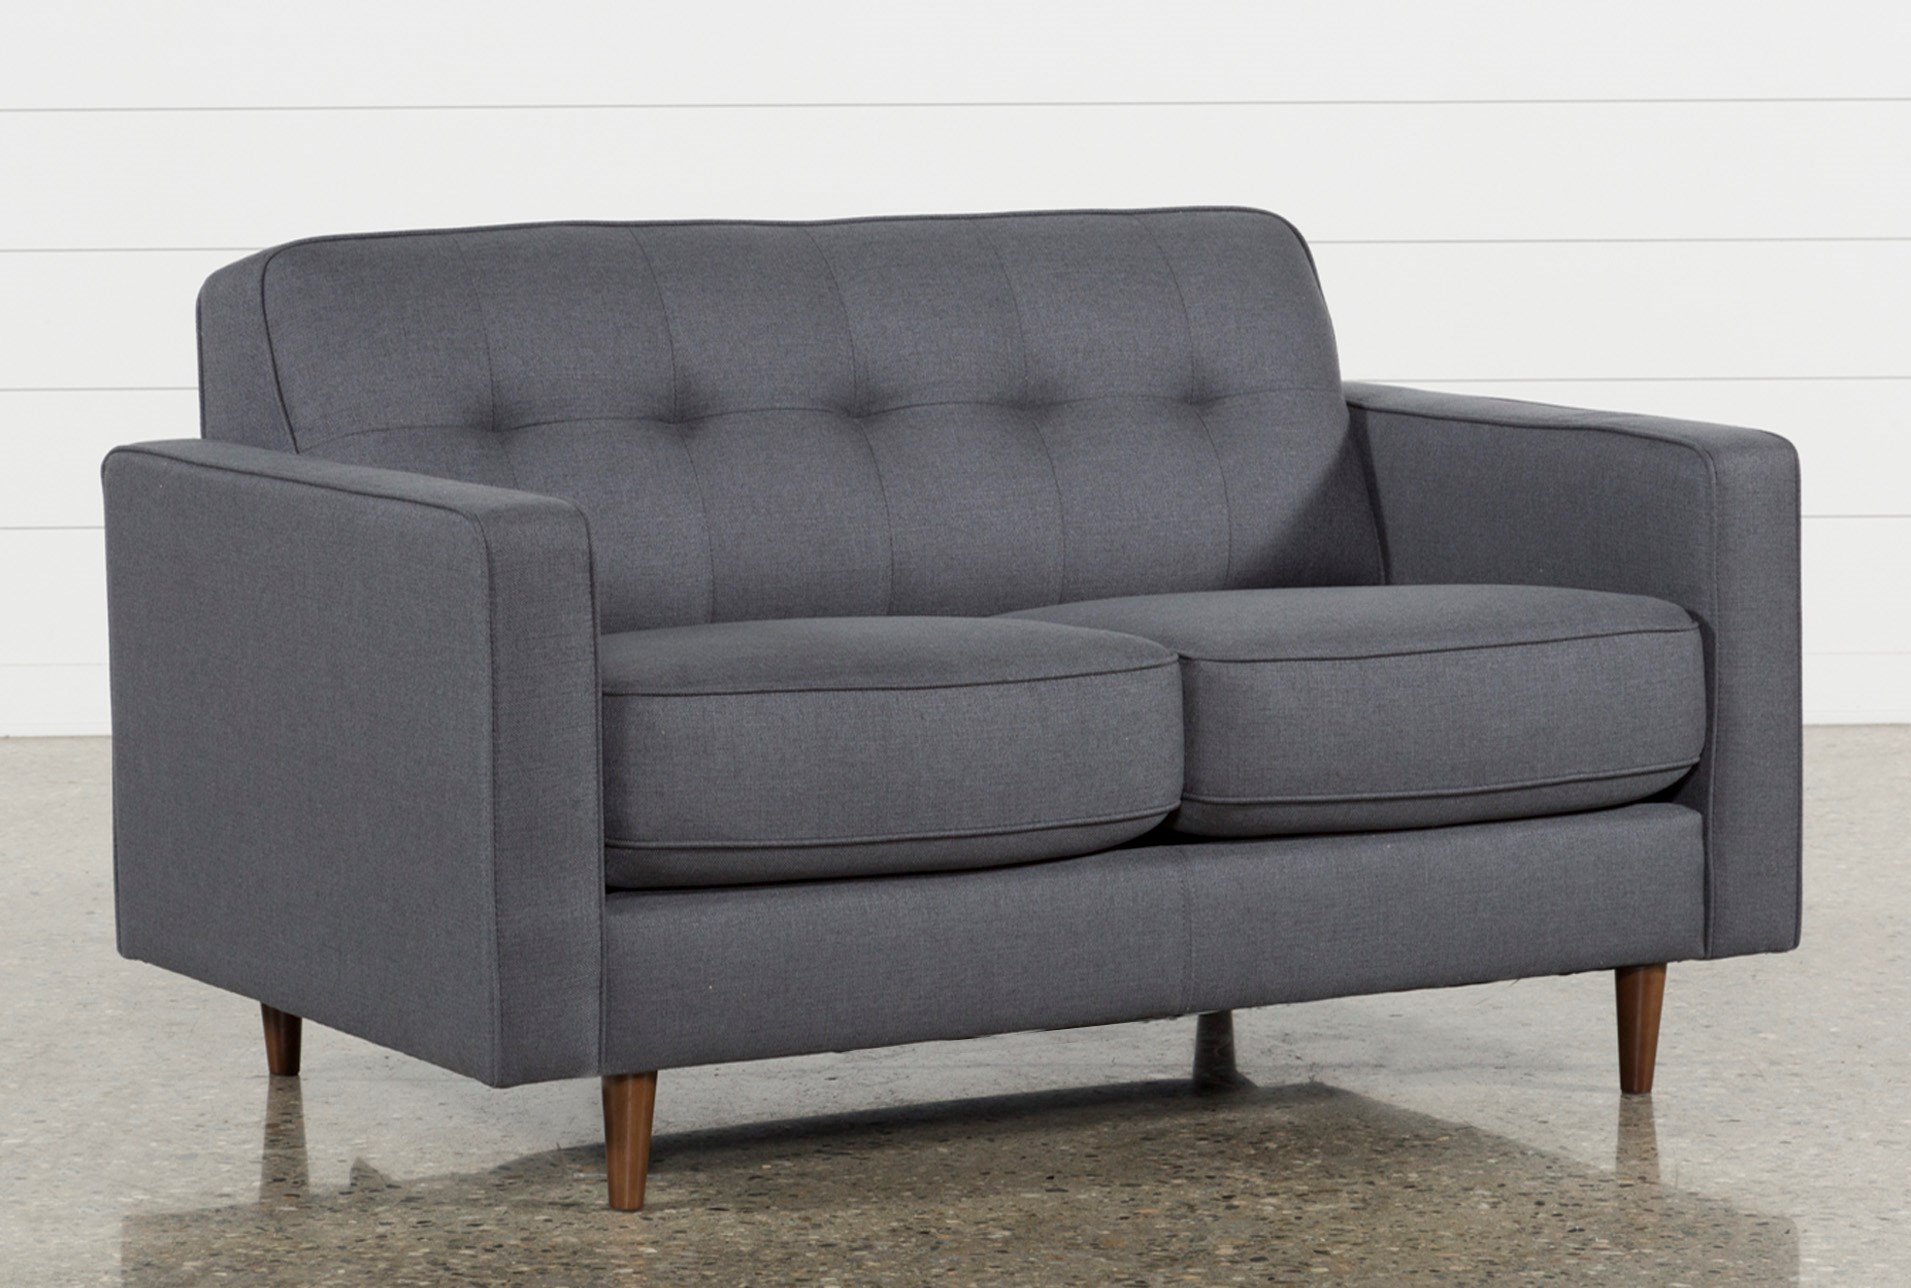 London Dark Grey Twin Plus Sleeper Sofa Qty 1 Has Been Successfully Added To Your Cart